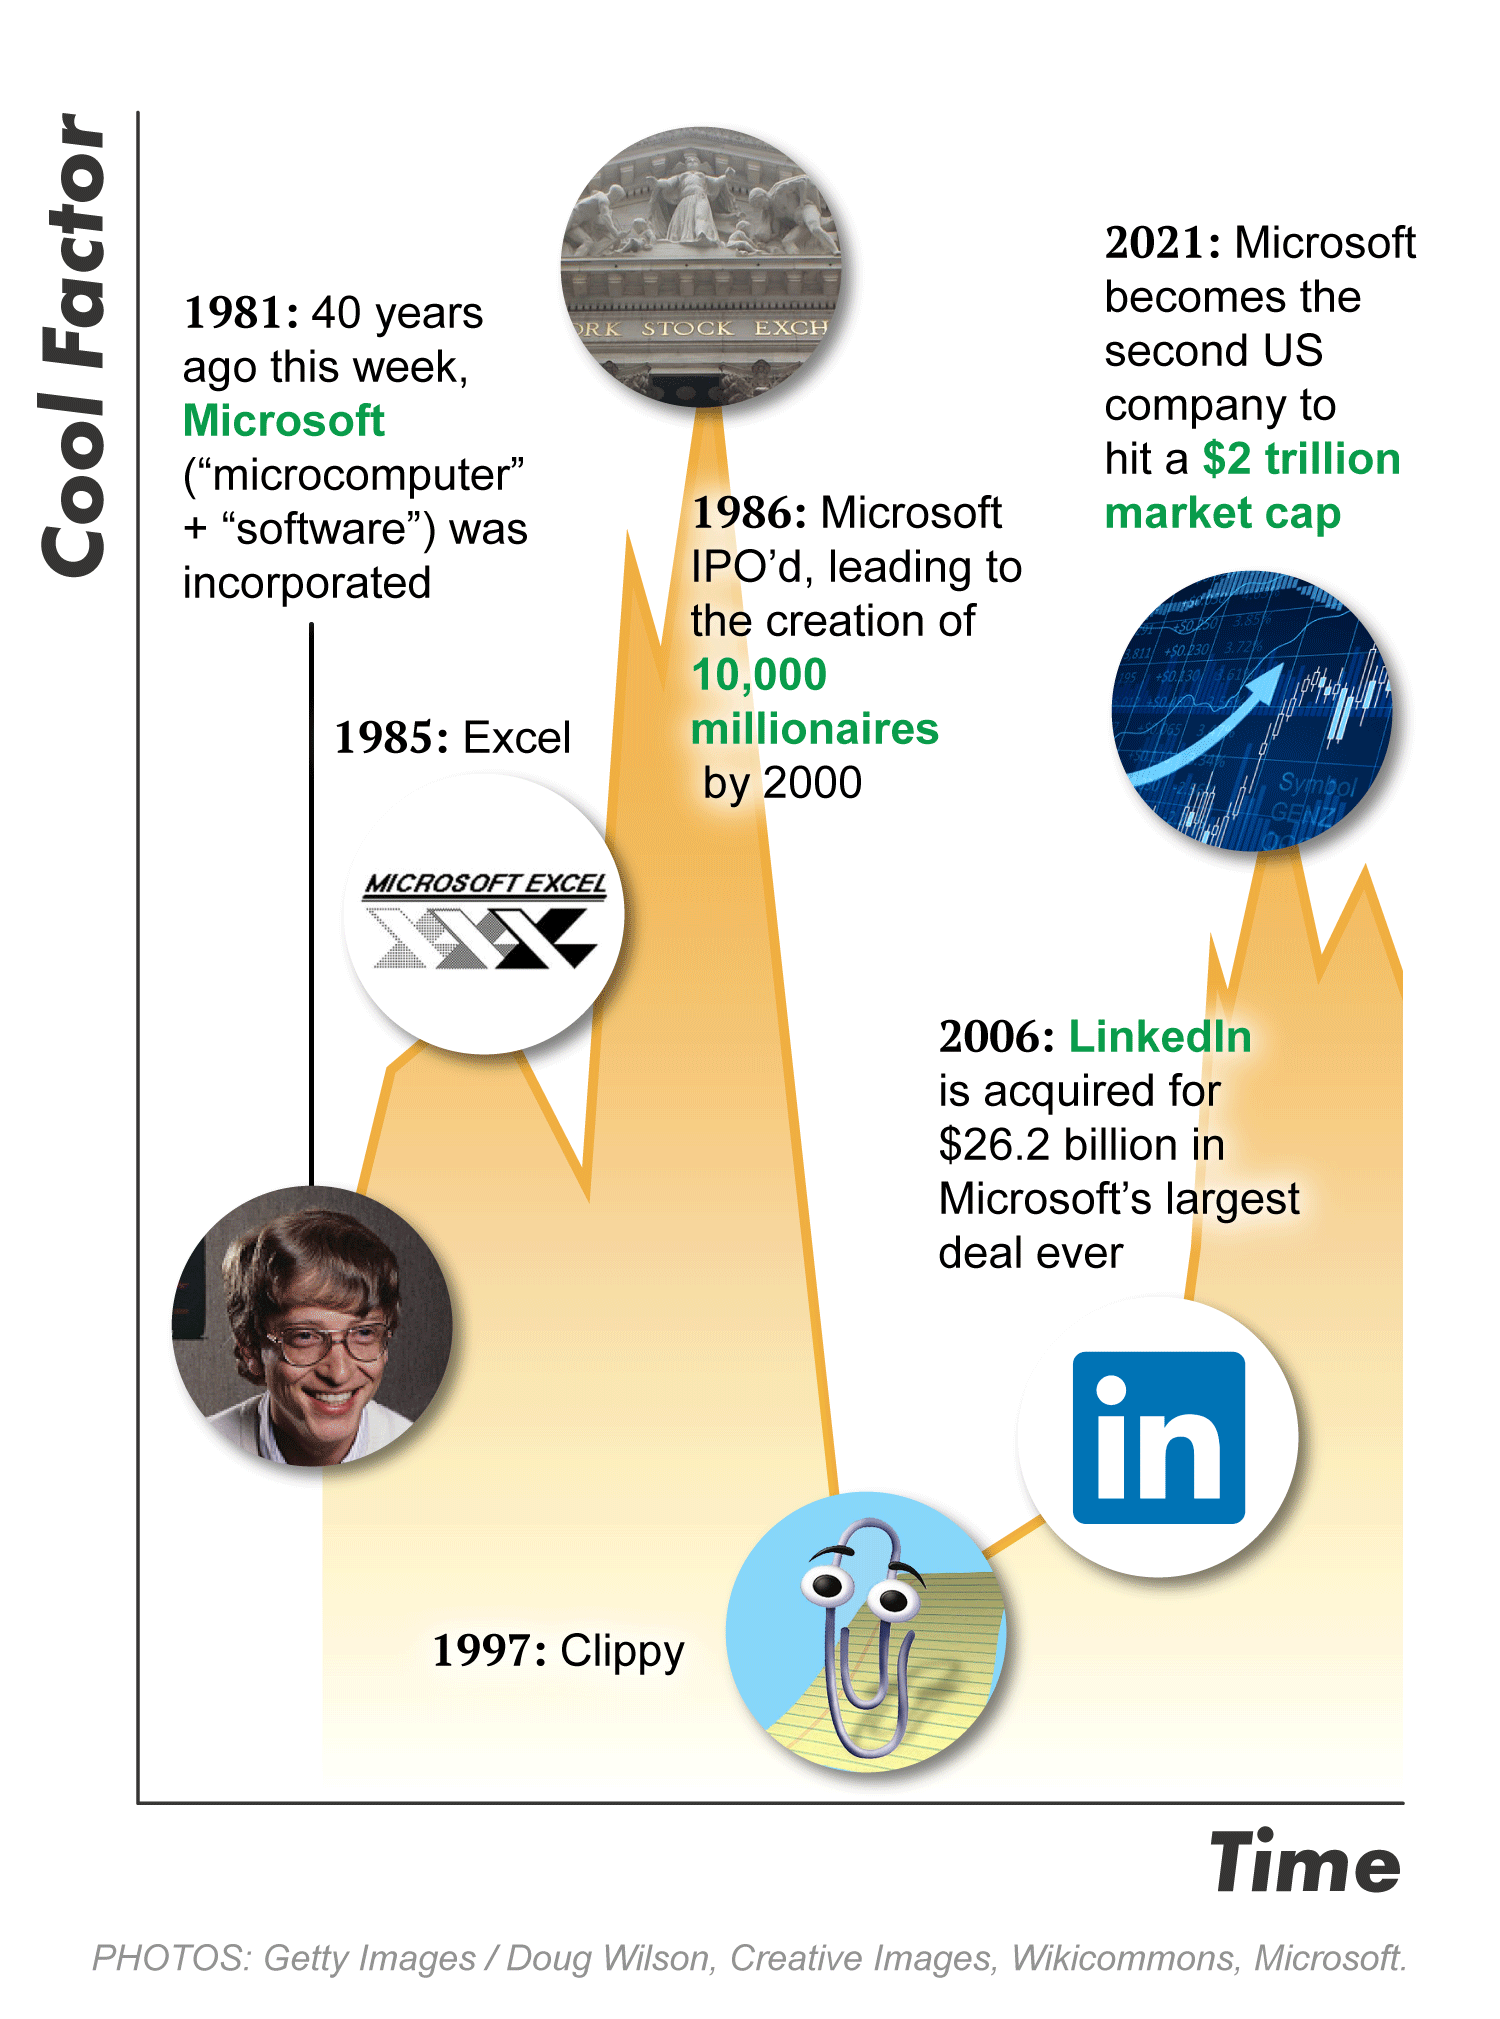 Microsoft's biggest moments throughout the years in a chart